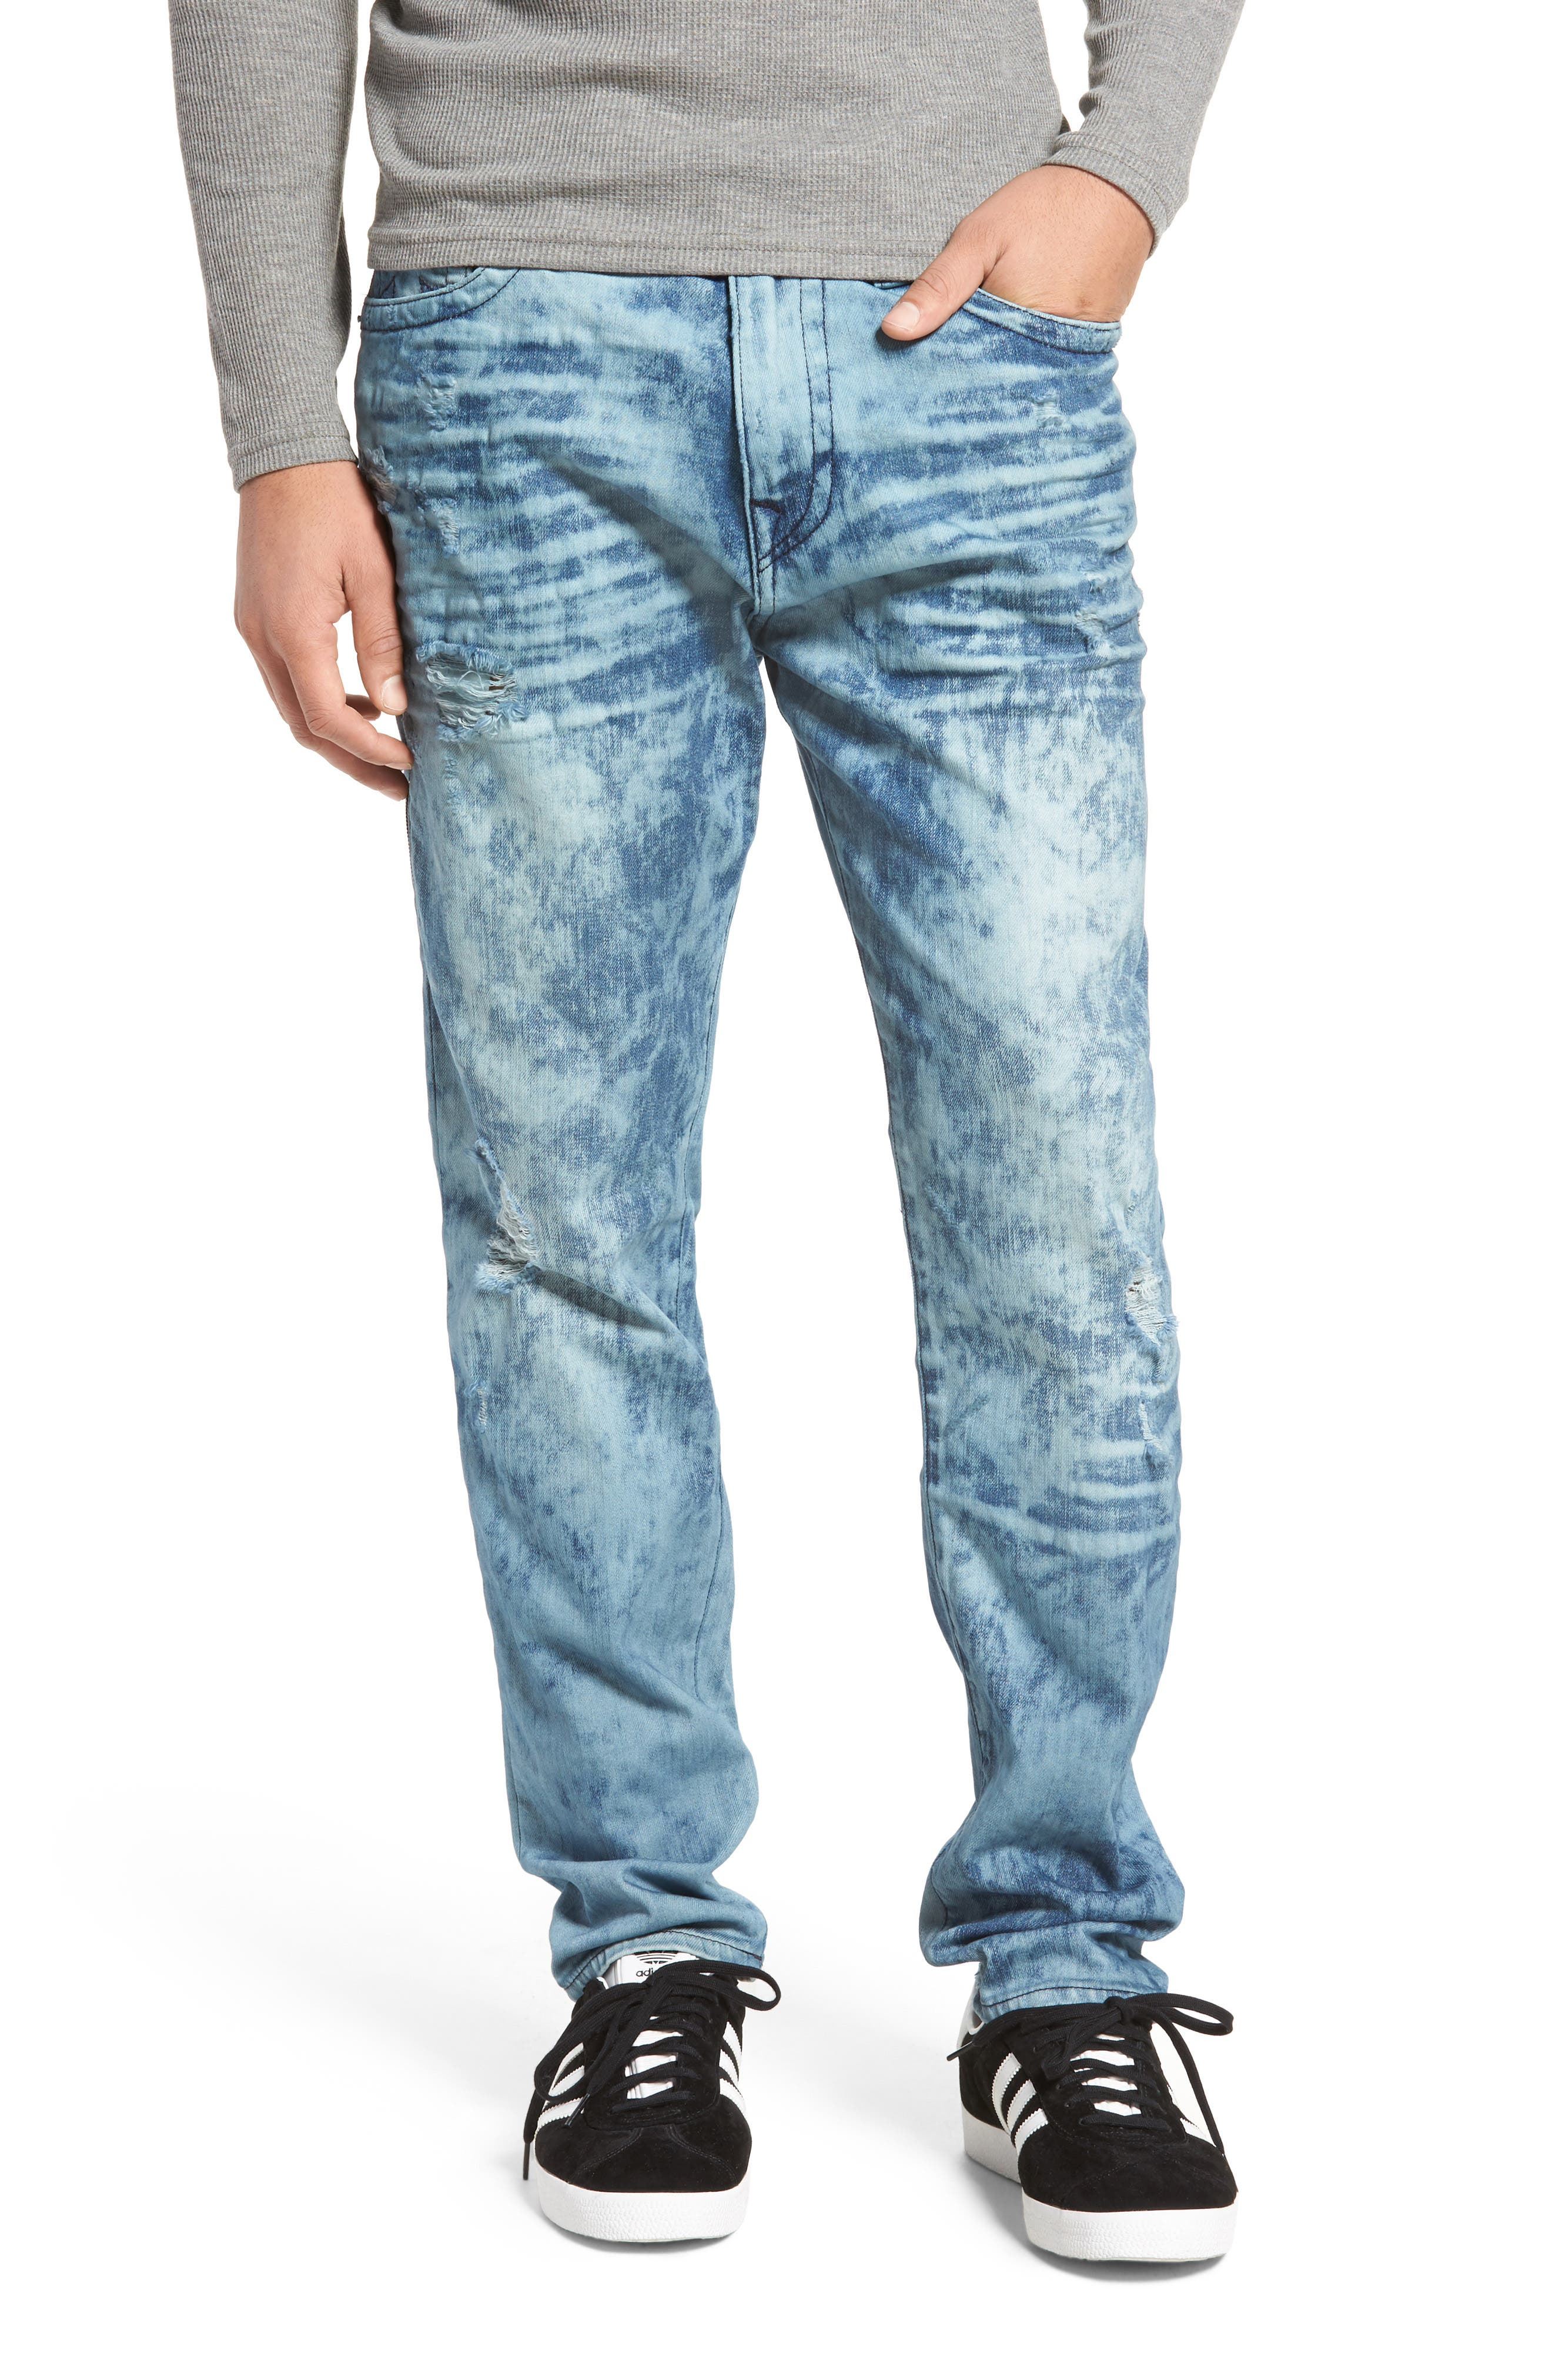 Mick Skinny Fit Jeans,                             Main thumbnail 1, color,                             Retro Active